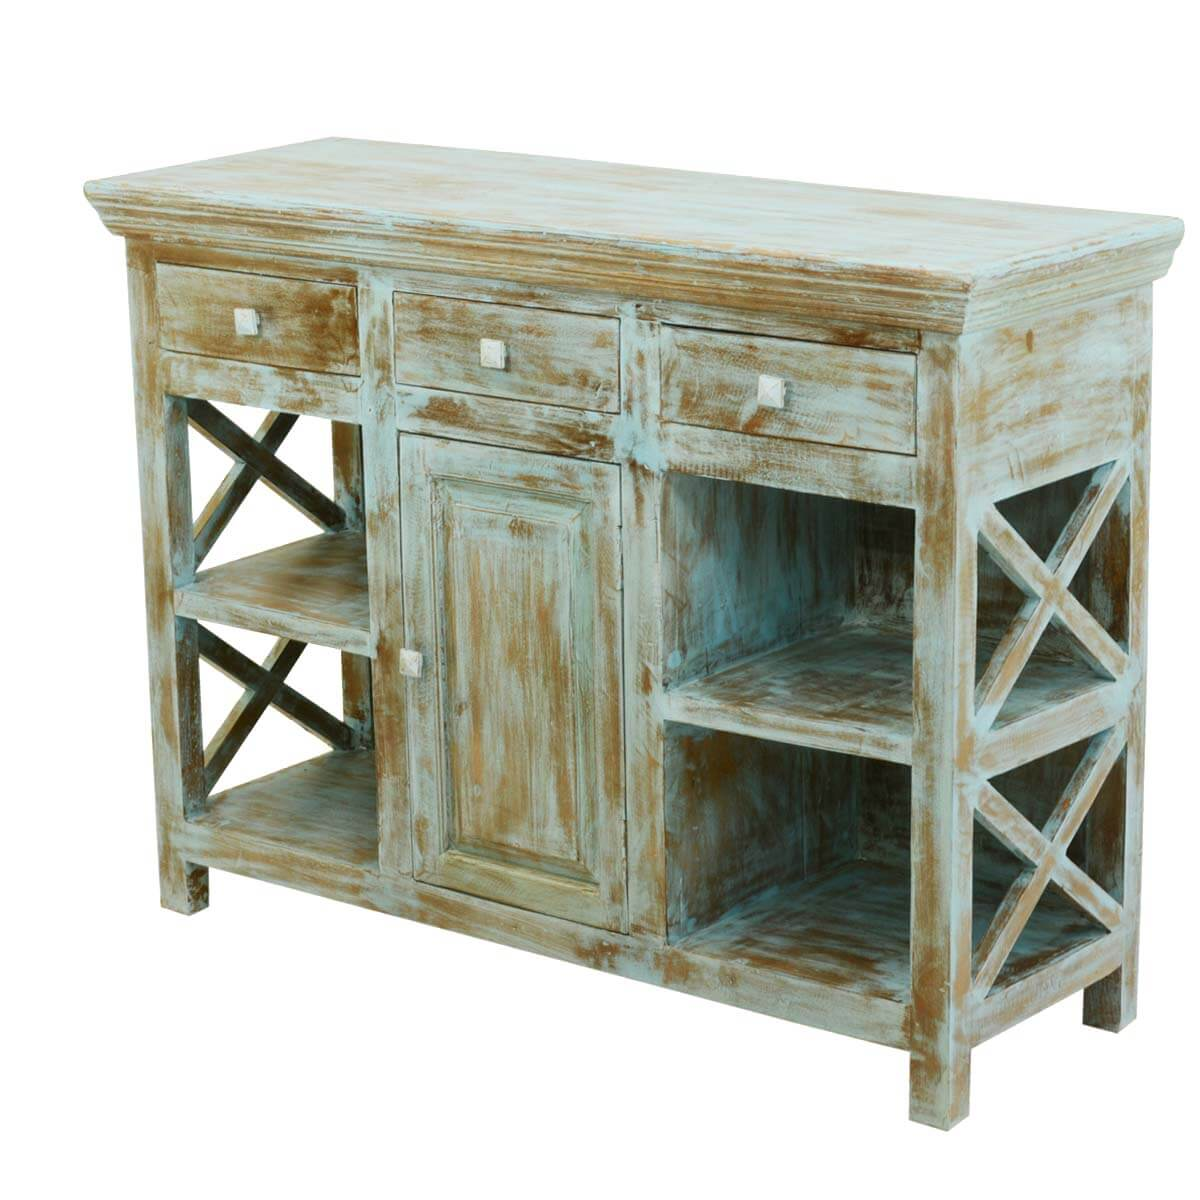 Superb img of Country Kitchen Mango Wood Open Shelves Buffet Sideboard with #7C6D47 color and 1200x1200 pixels